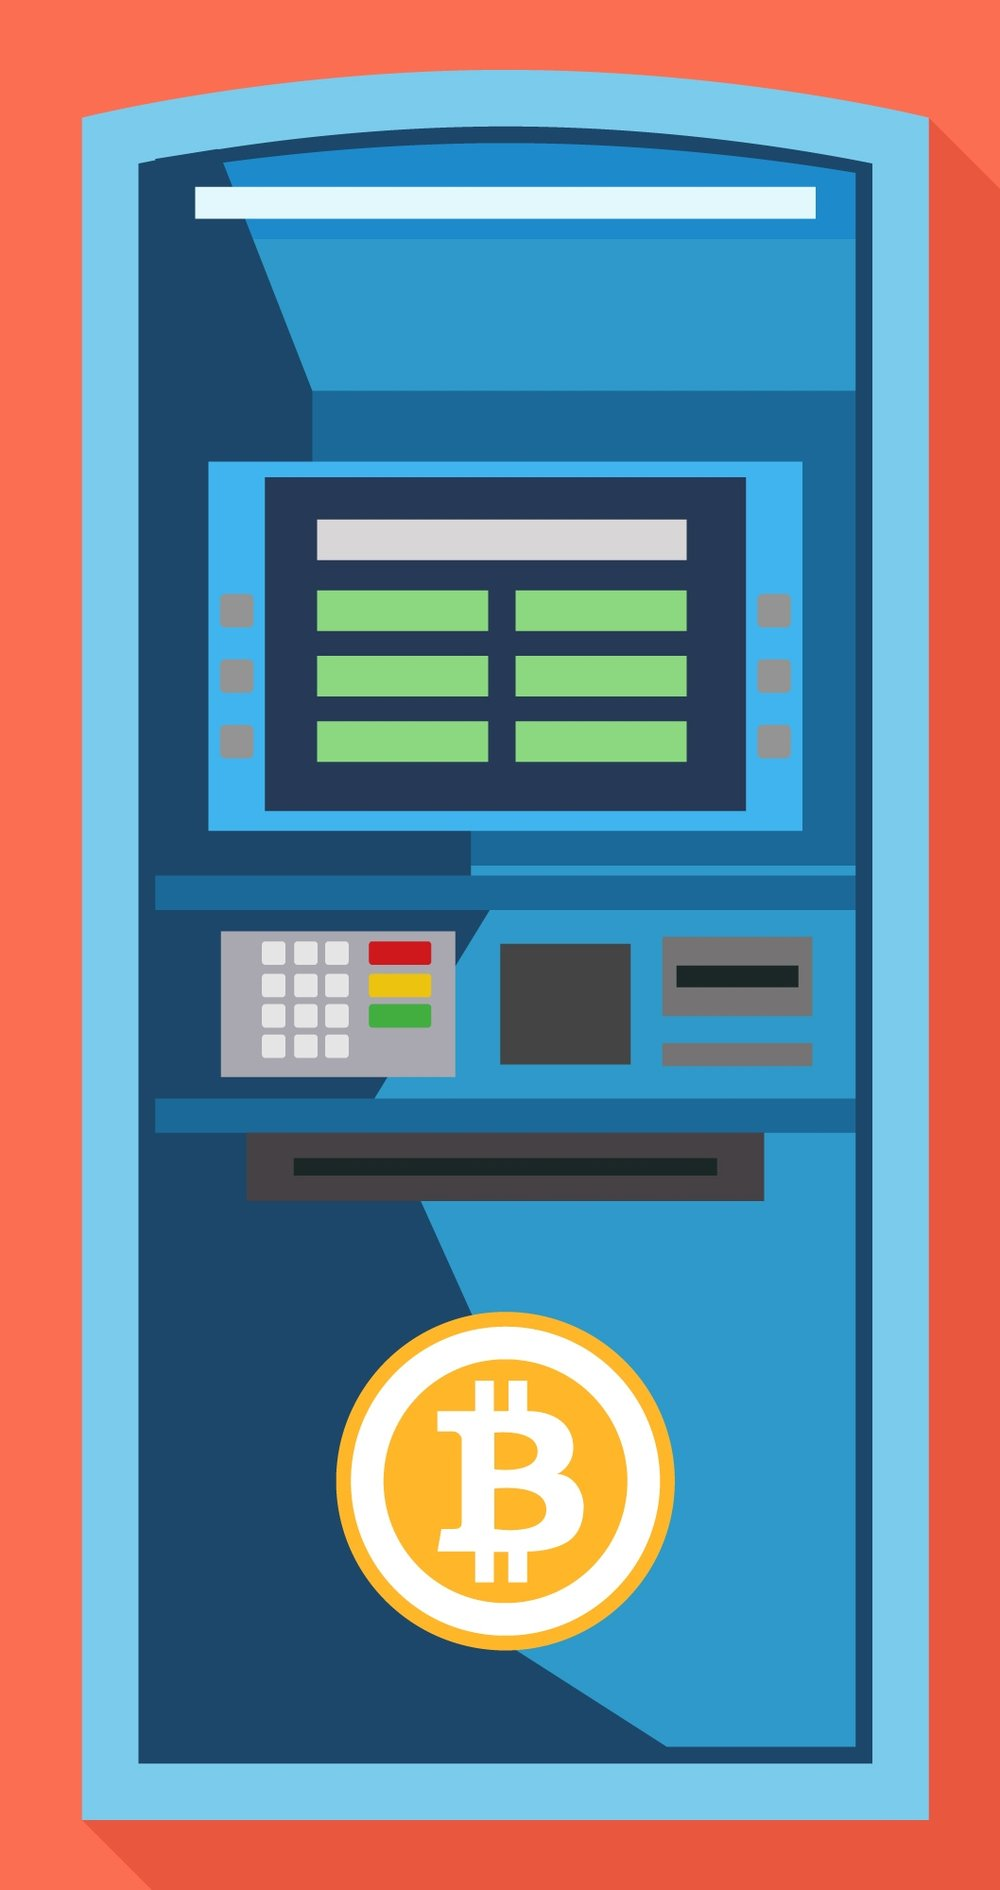 10 BitCoin ATMs are being located in Northern Ireland